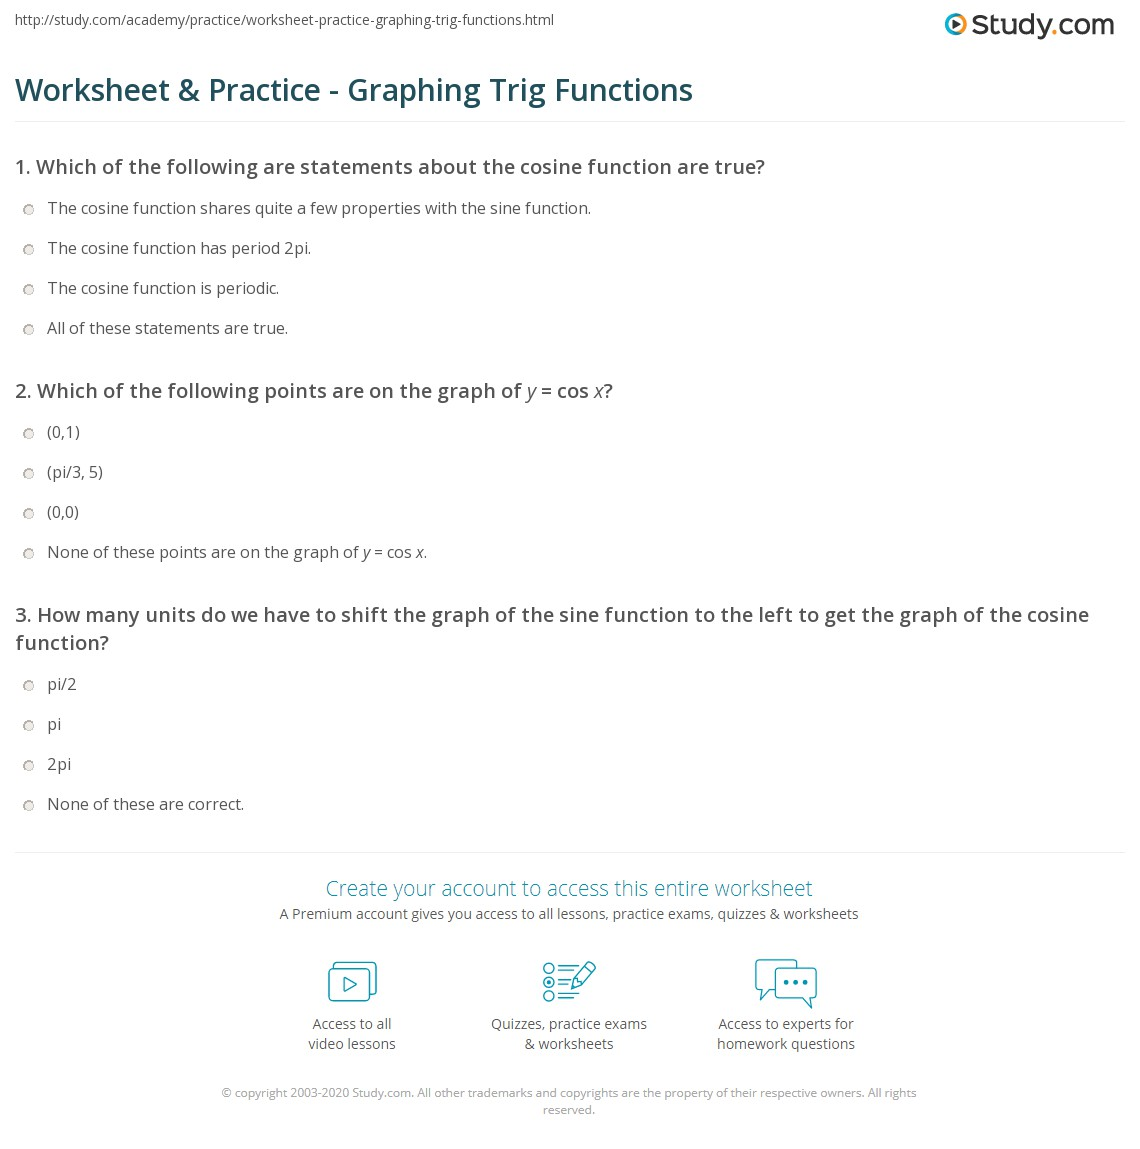 Worksheet & Practice - Graphing Trig Functions | Study.com